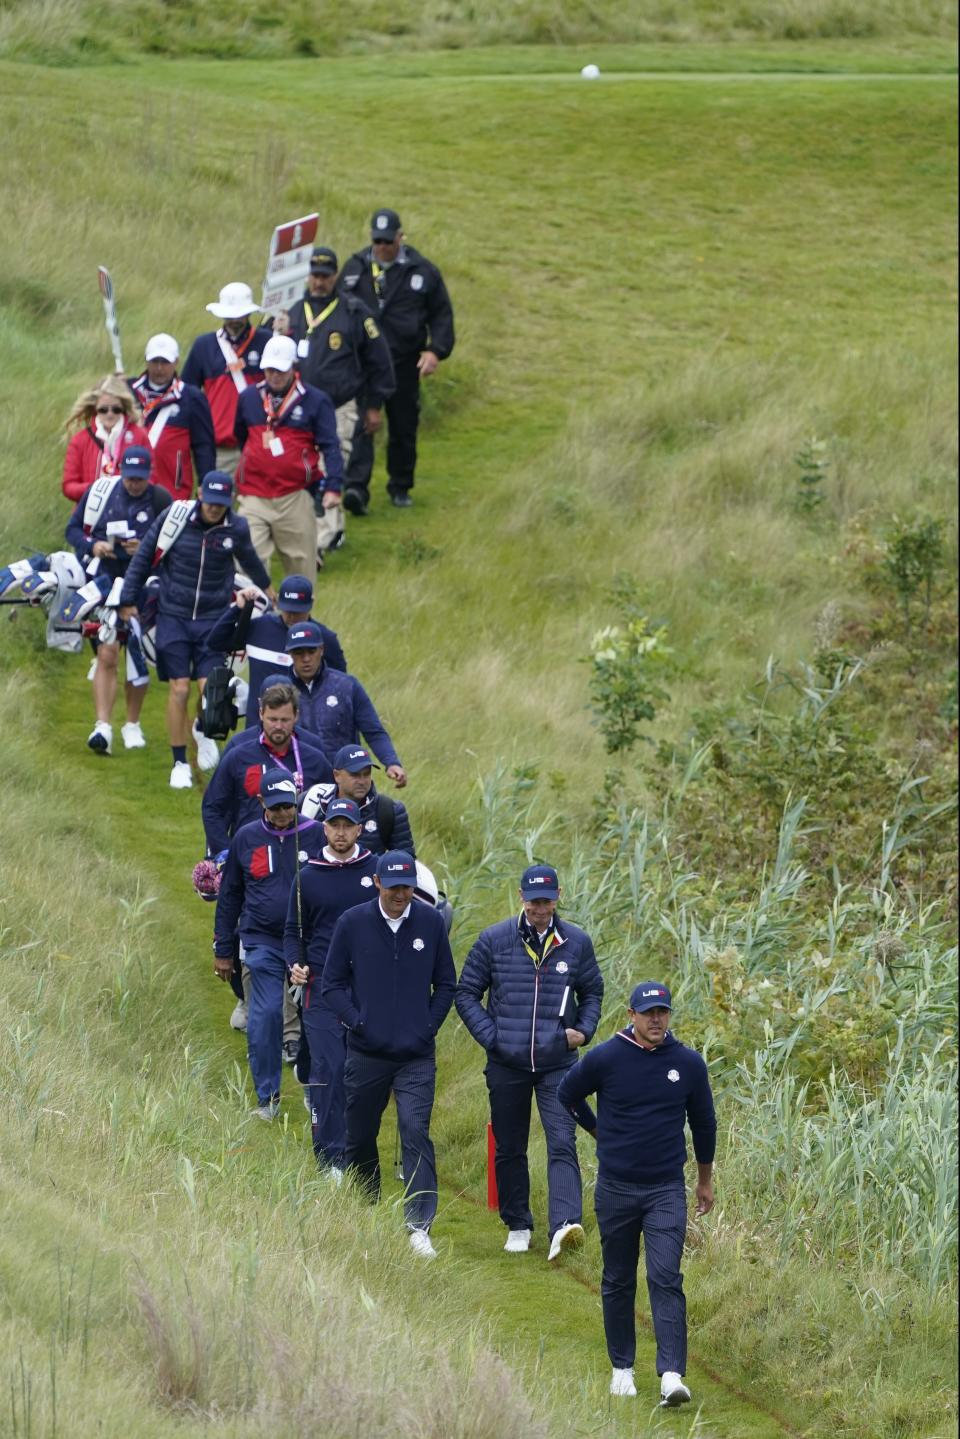 Team USA's Brooks Koepka and other team USA members walk off the 10th tee during a practice day at the Ryder Cup at the Whistling Straits Golf Course Wednesday, Sept. 22, 2021, in Sheboygan, Wis. (AP Photo/Charlie Neibergall)